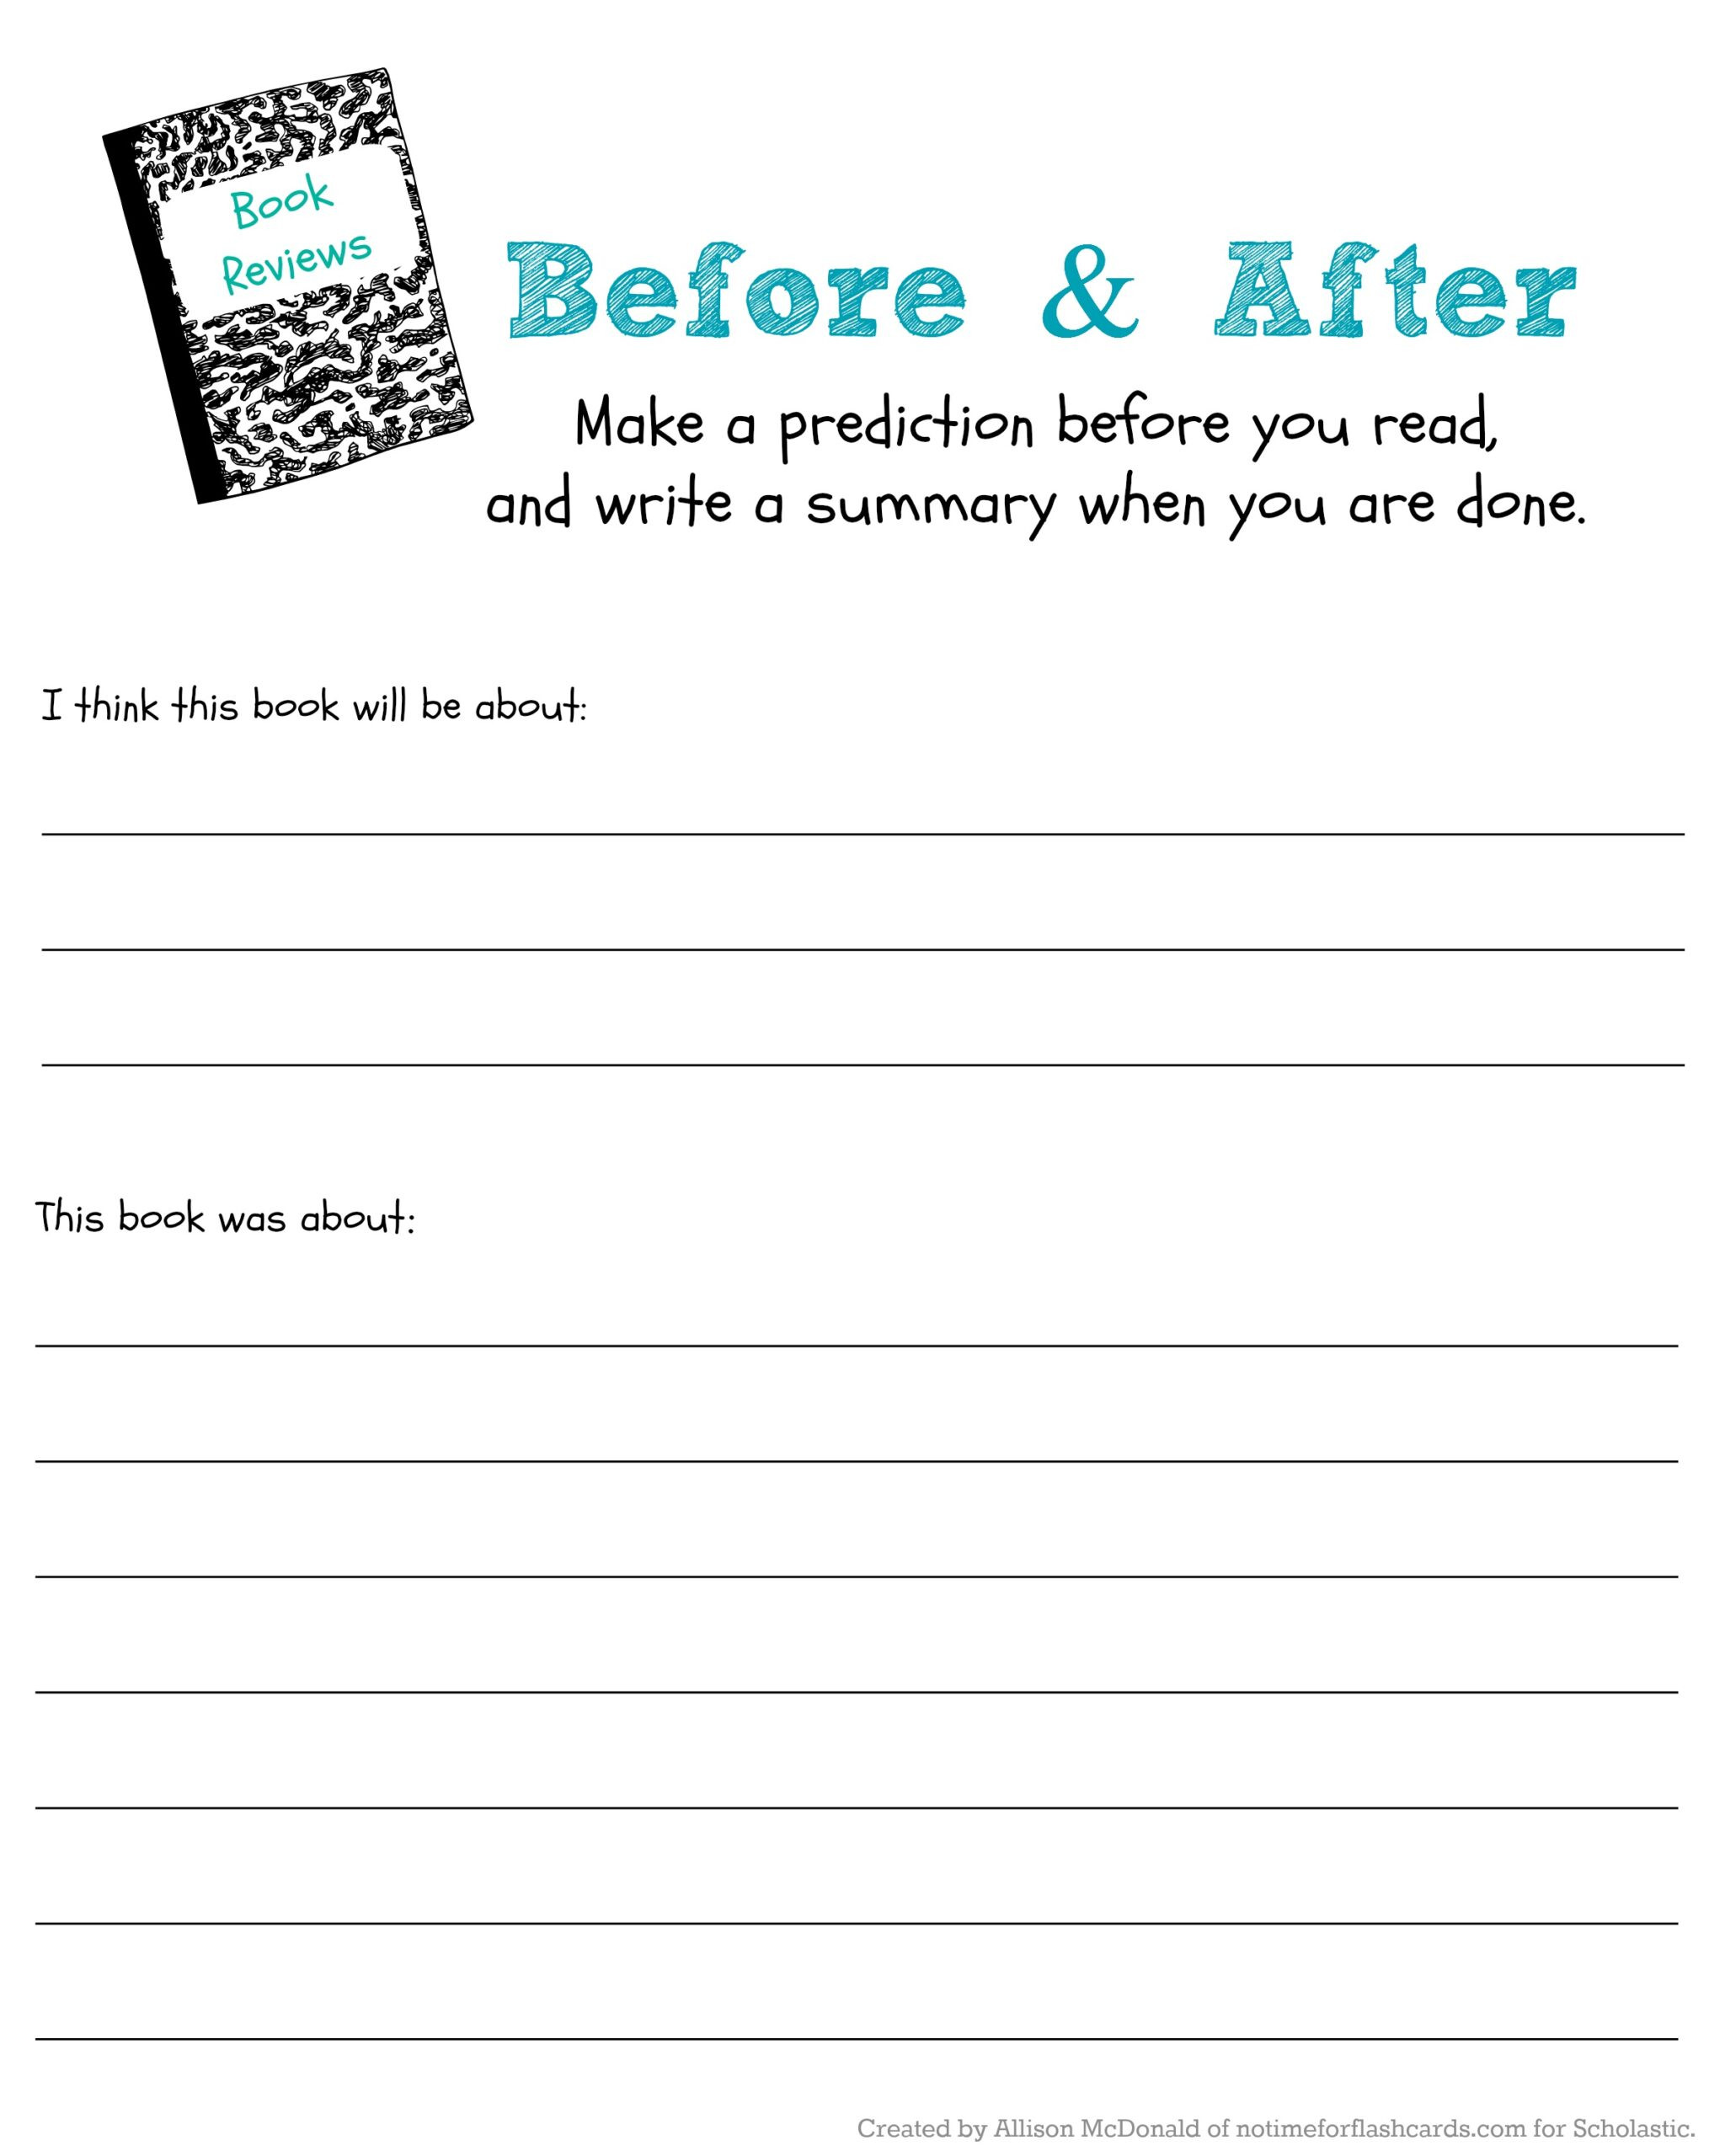 Making Predictions Worksheets 2nd Grade Judge Book by Its Cover to Predict Read Scholastic Parents